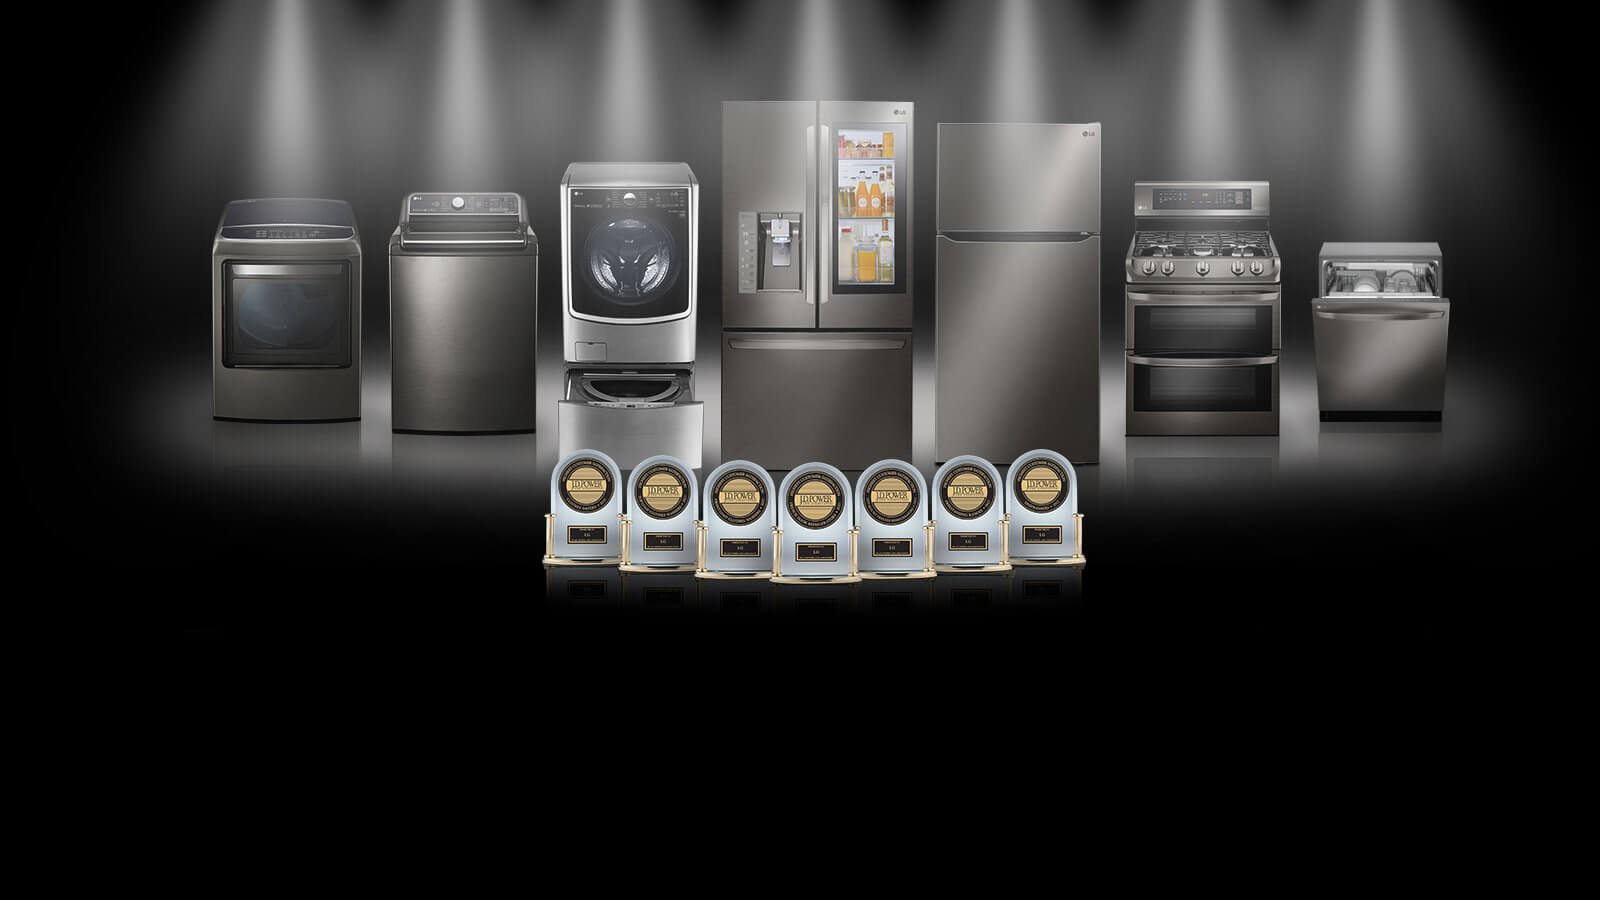 LG Kitchen and Wash J.D. Power Awards